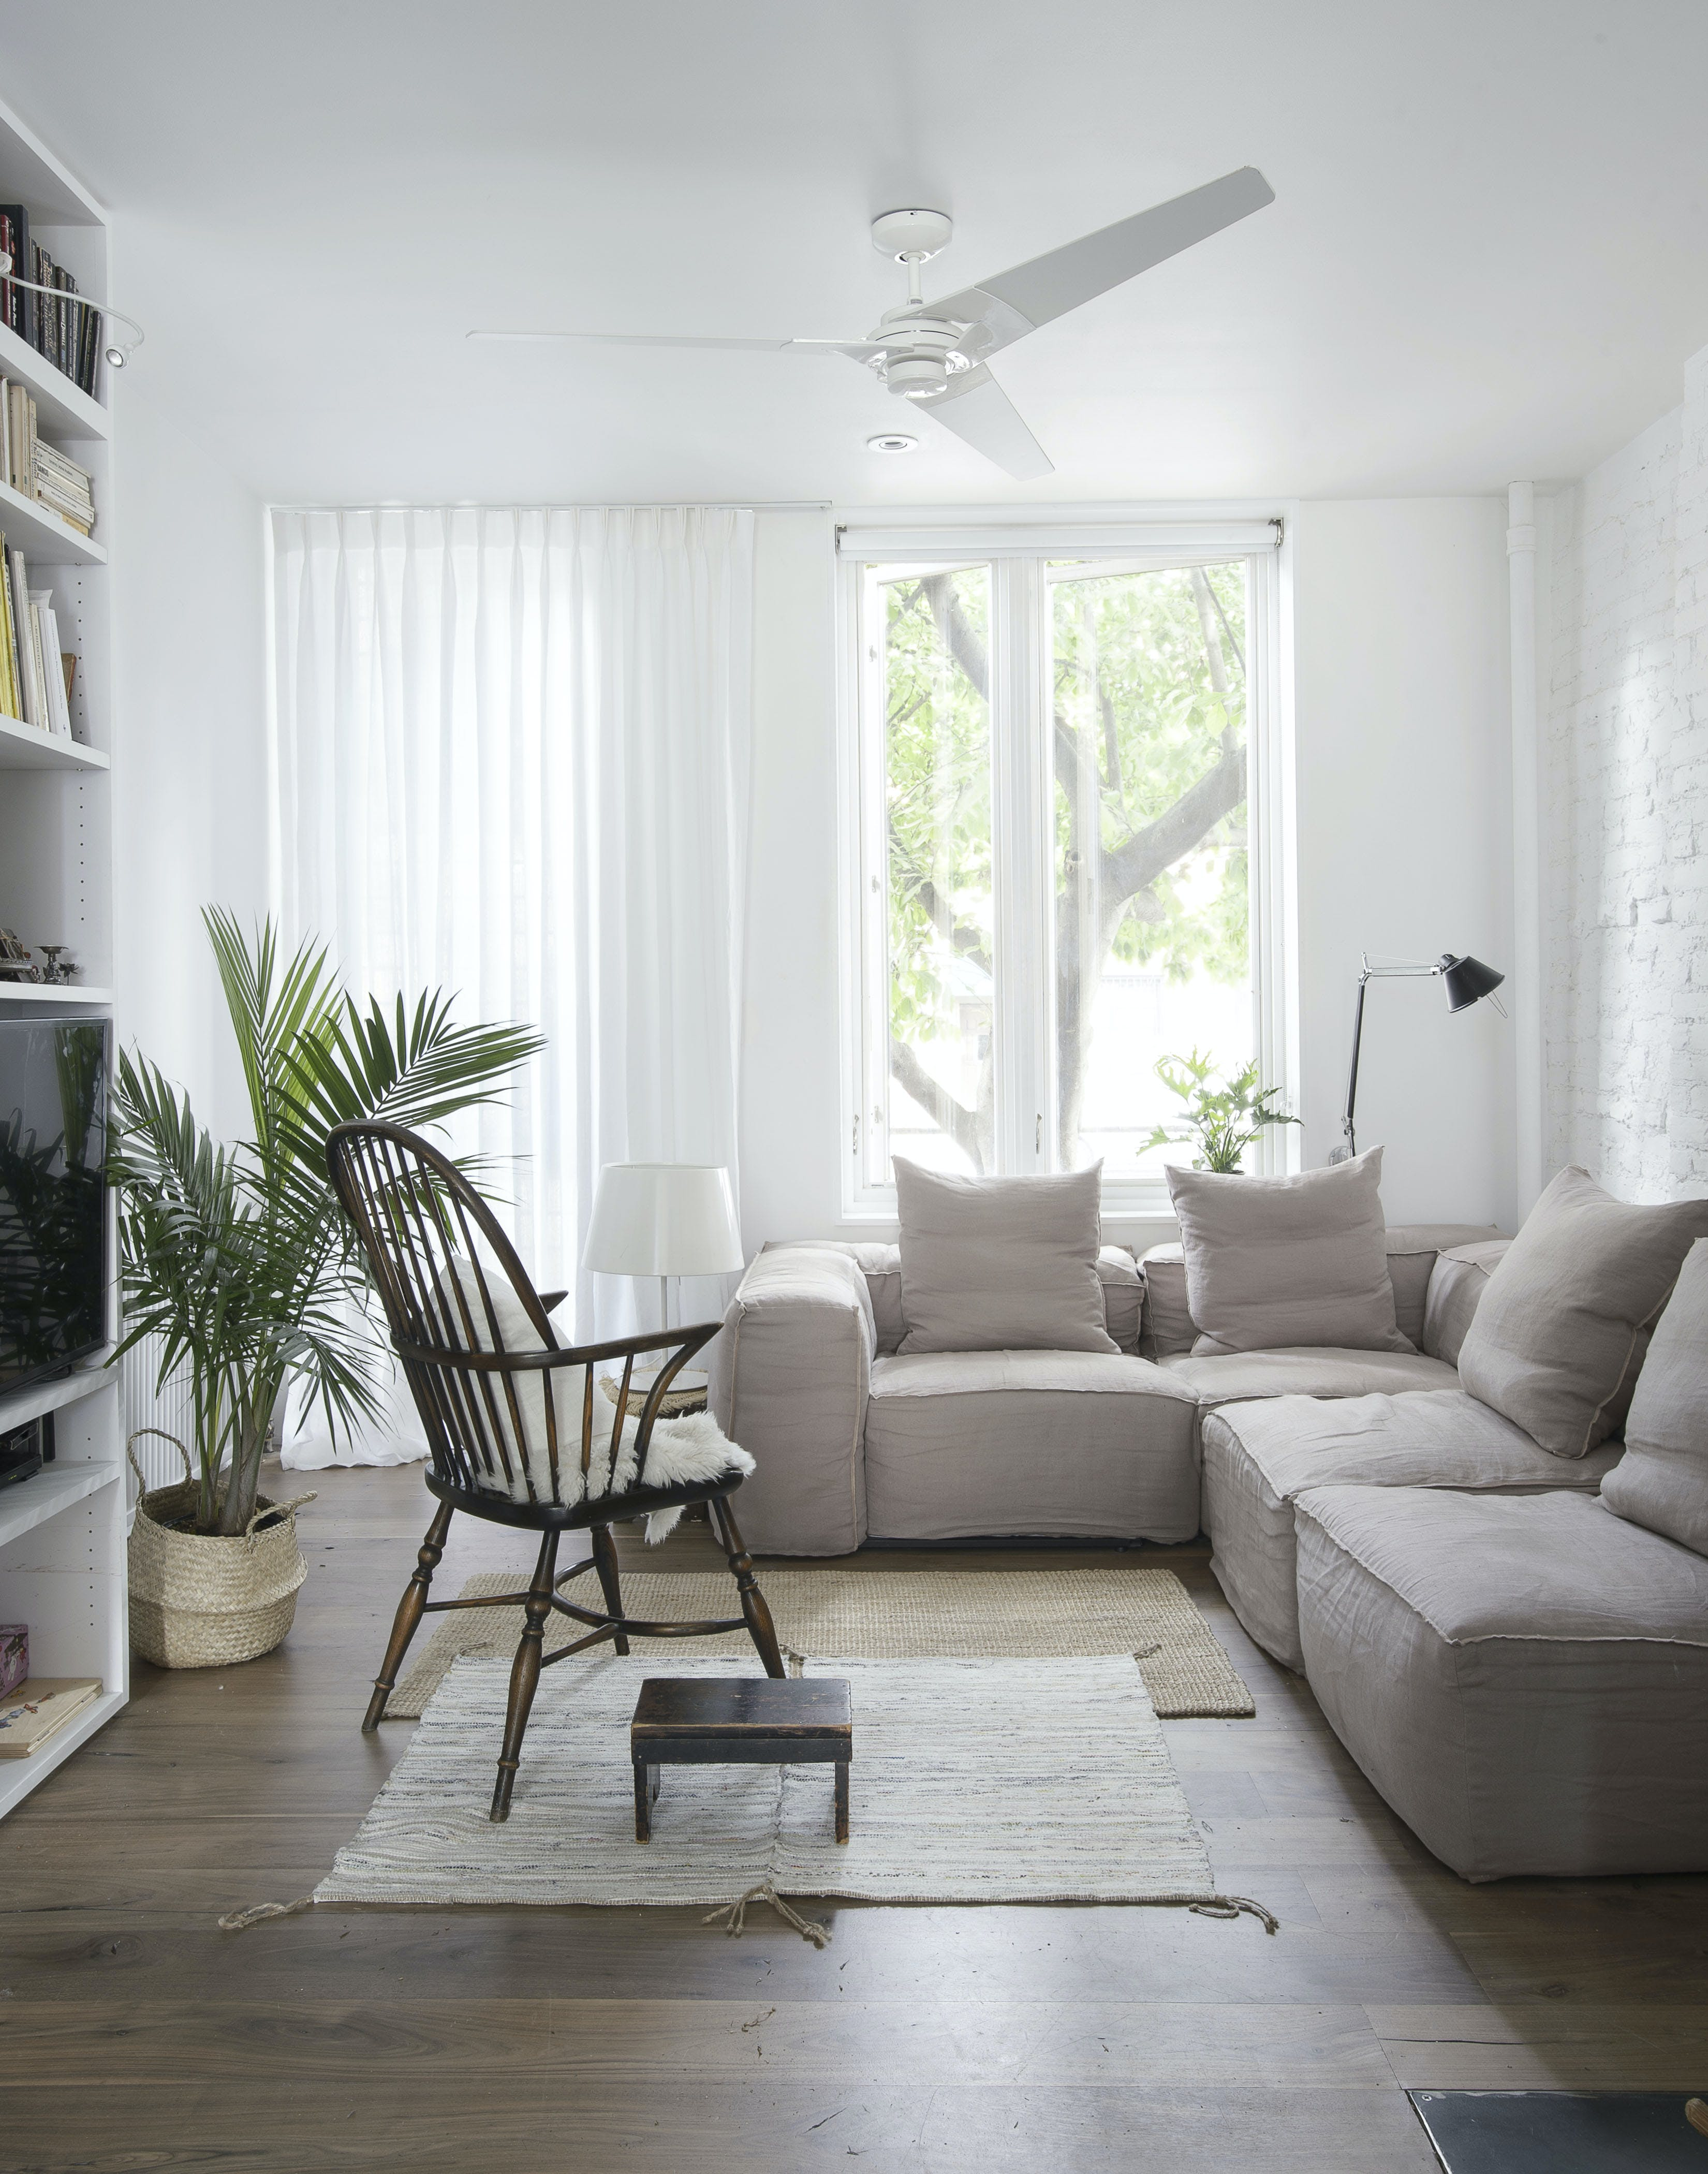 Brooklyn Row House 1 | Office of Architecture | Archinect